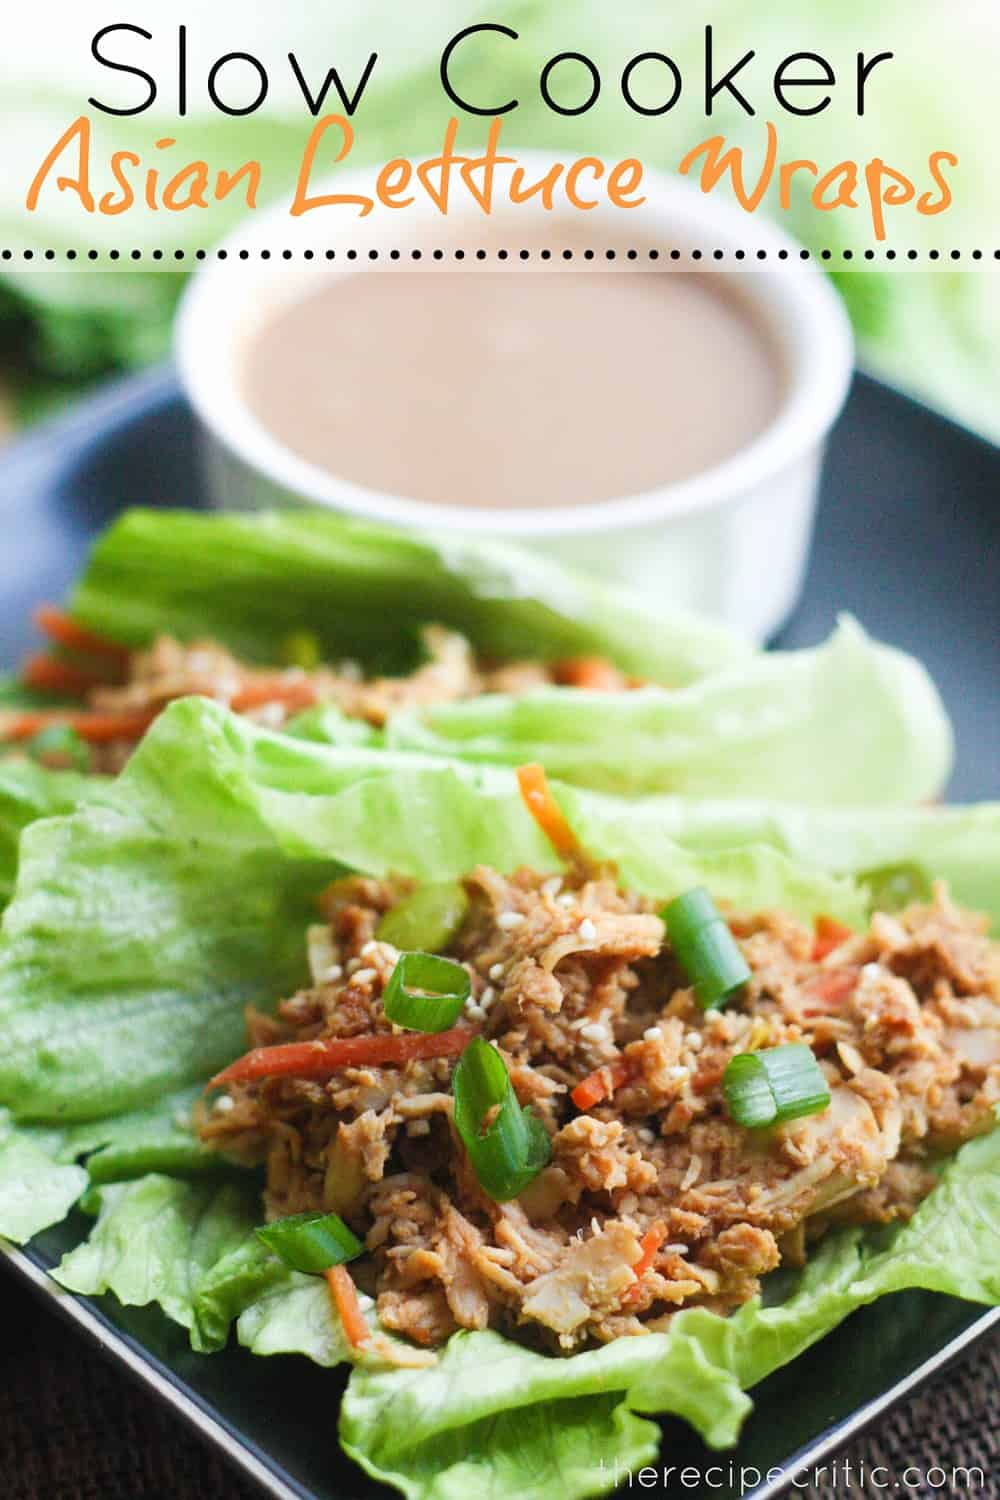 Are not Asian lettuce wraps consider, that